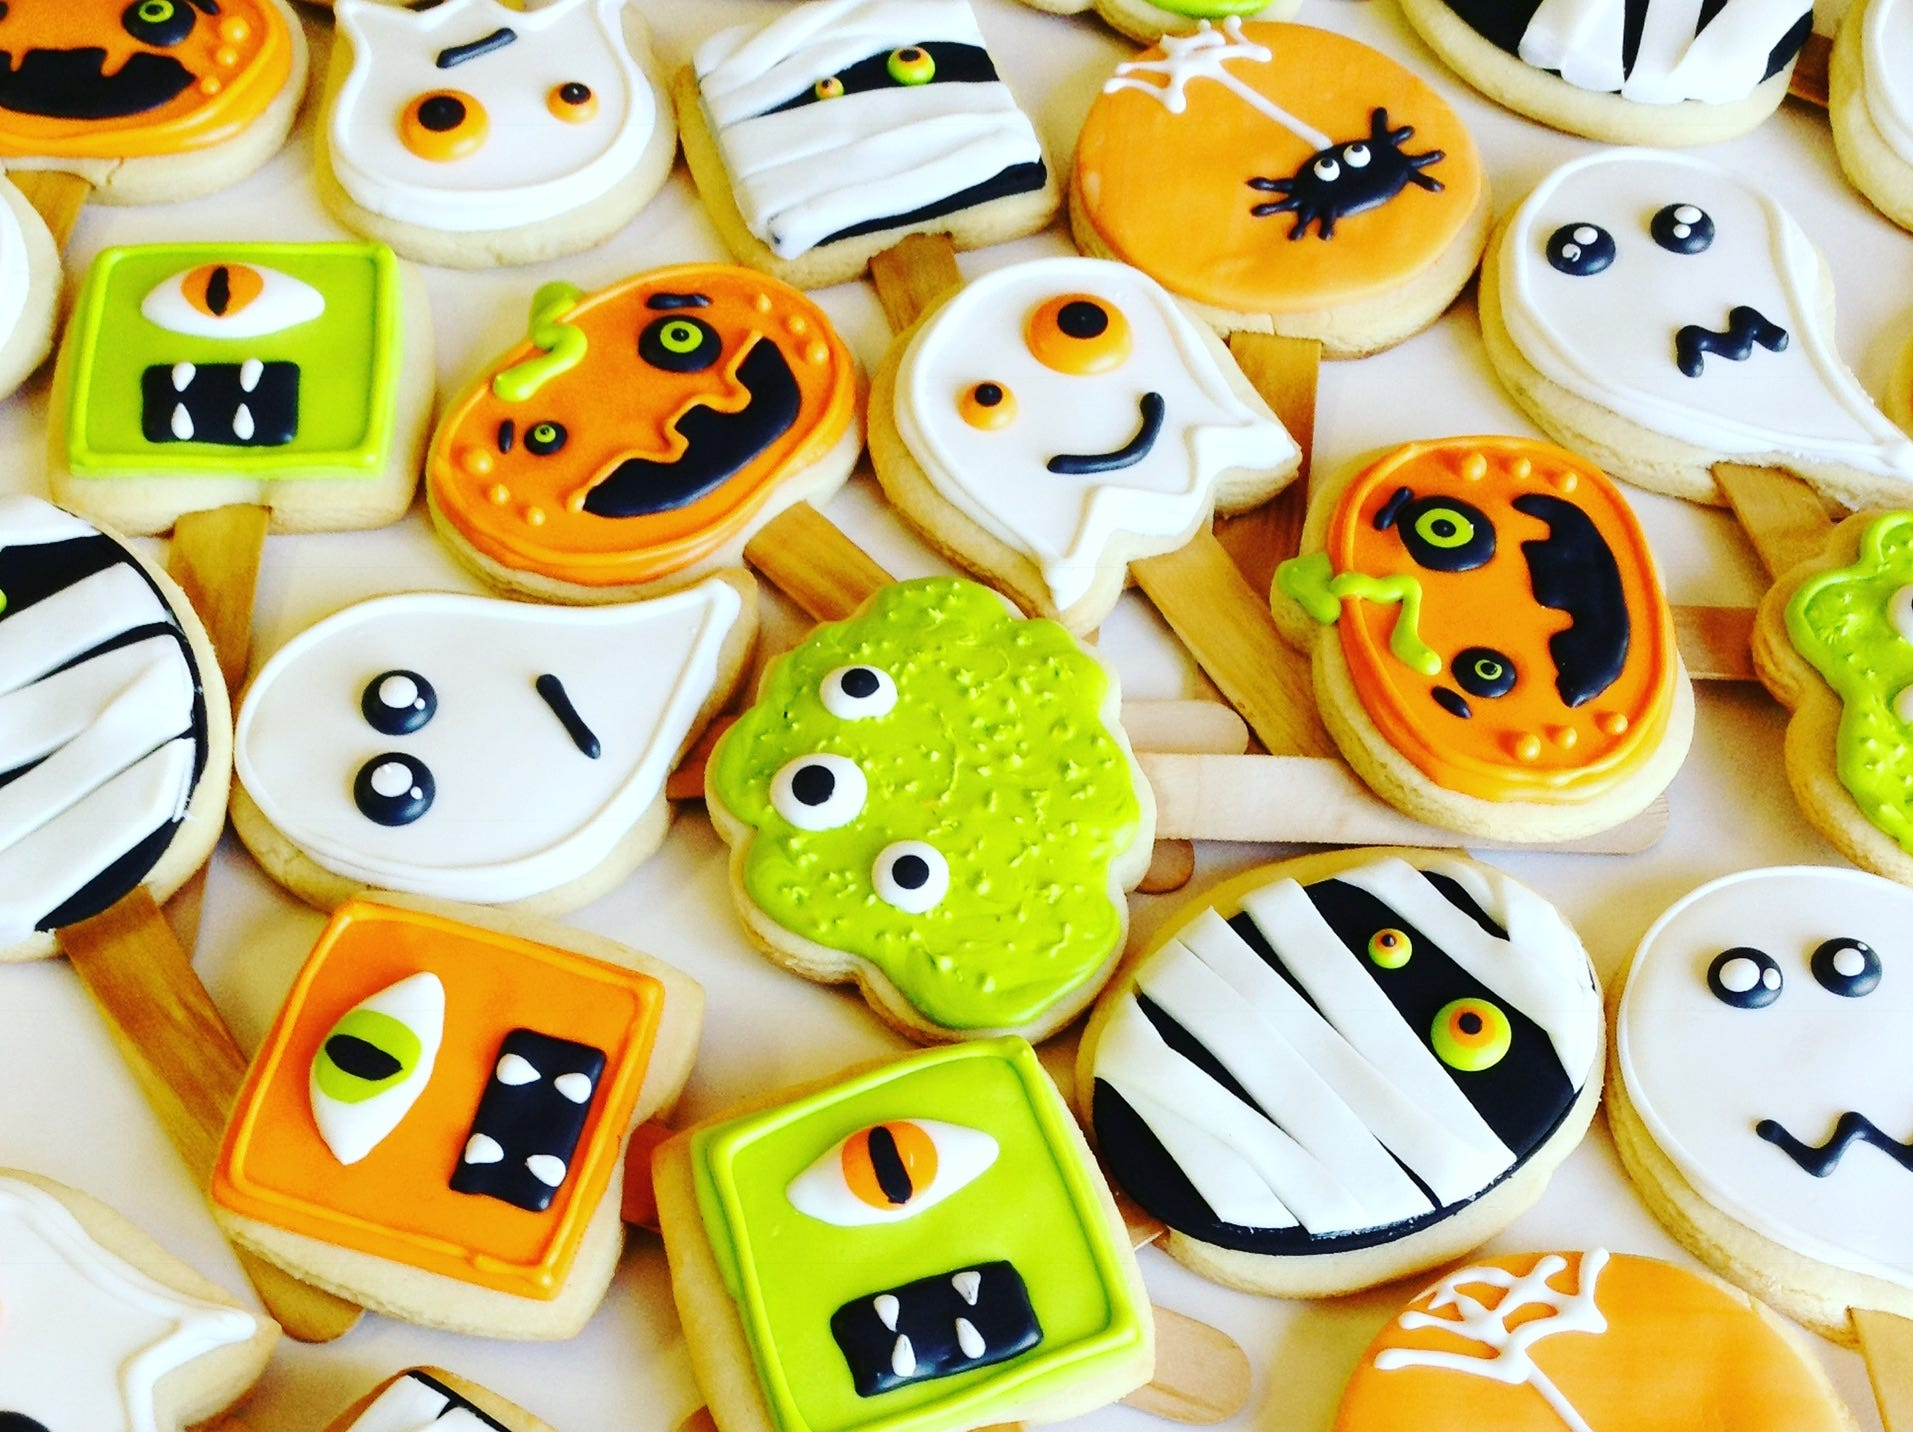 Local baker Julia Perugini is known for her creative and unique cookie designs.